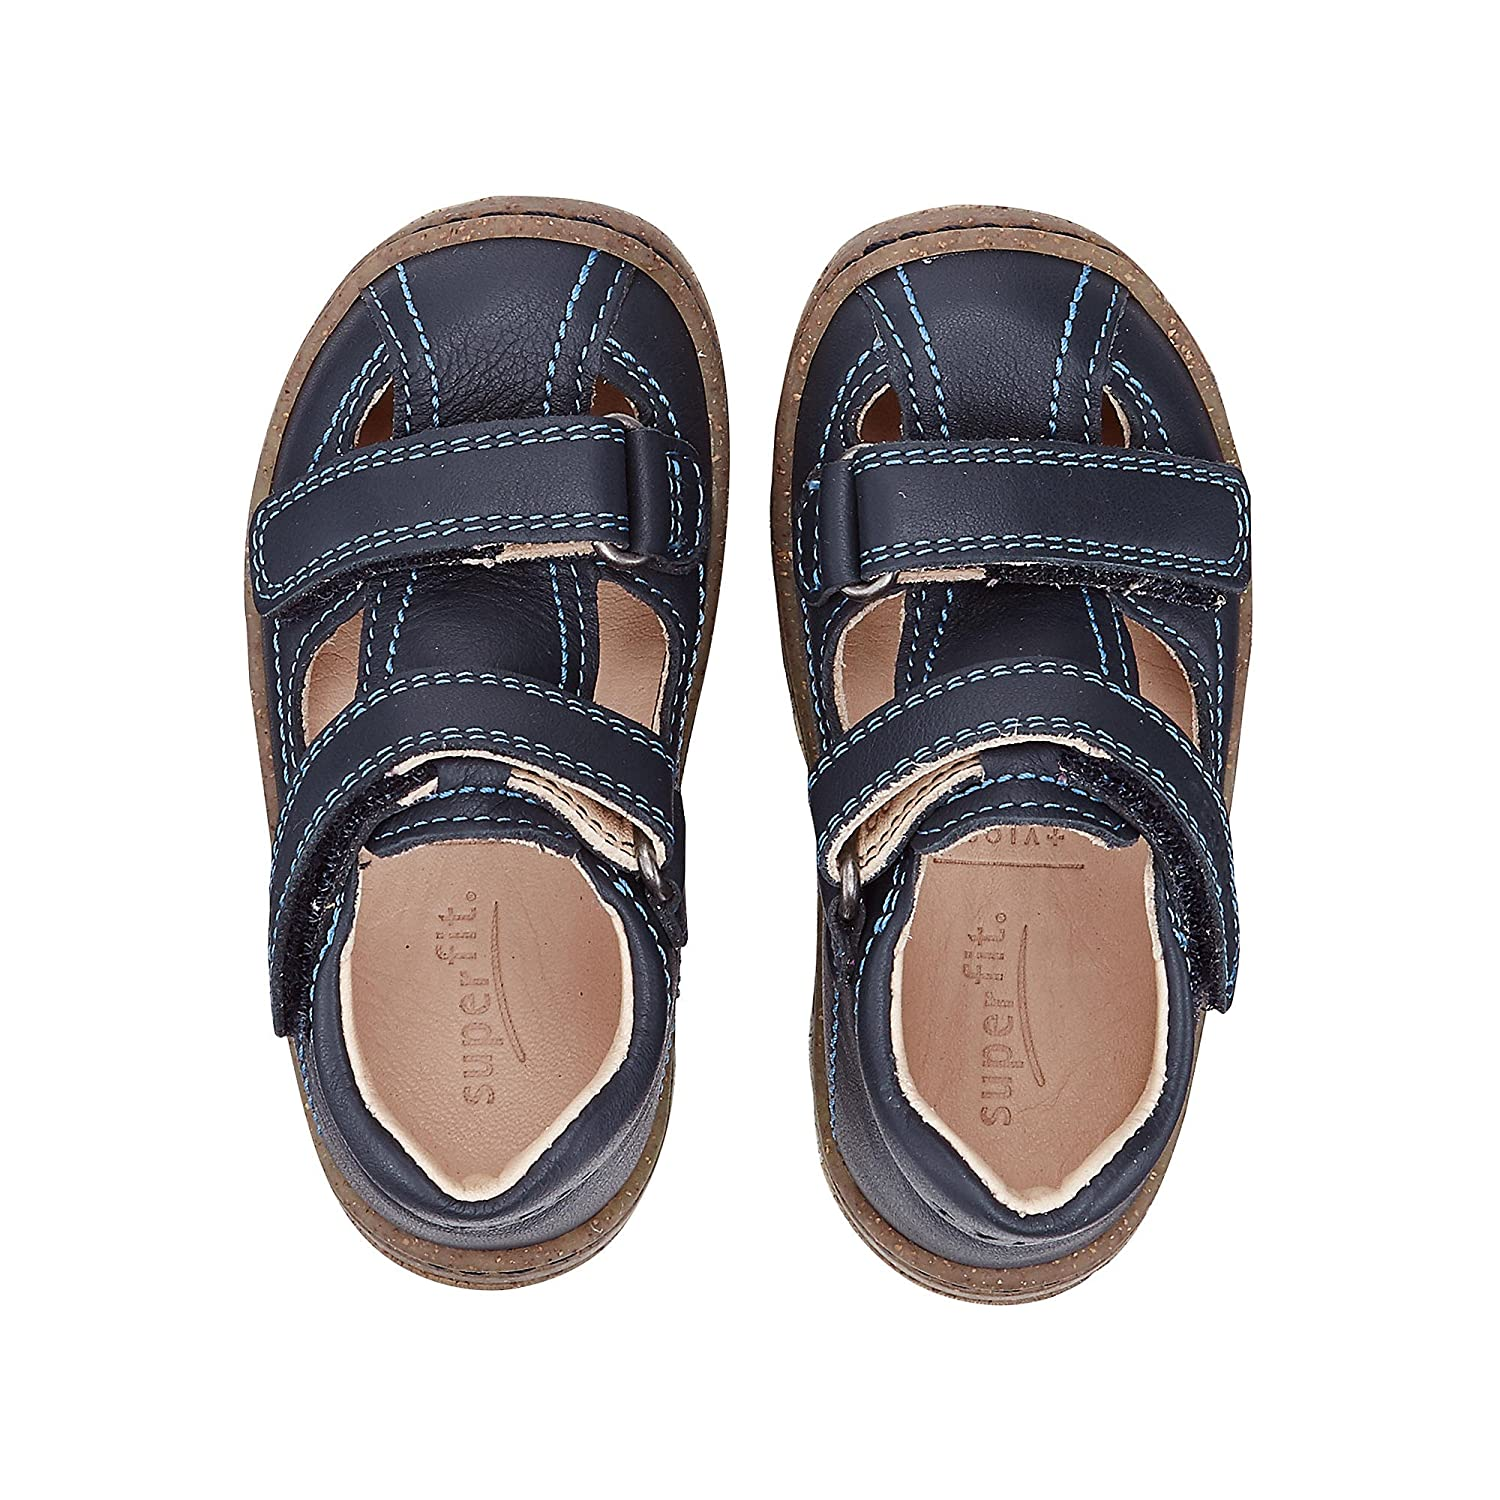 Superfit Kinder Sandalen 2-00229-80 blau 461970